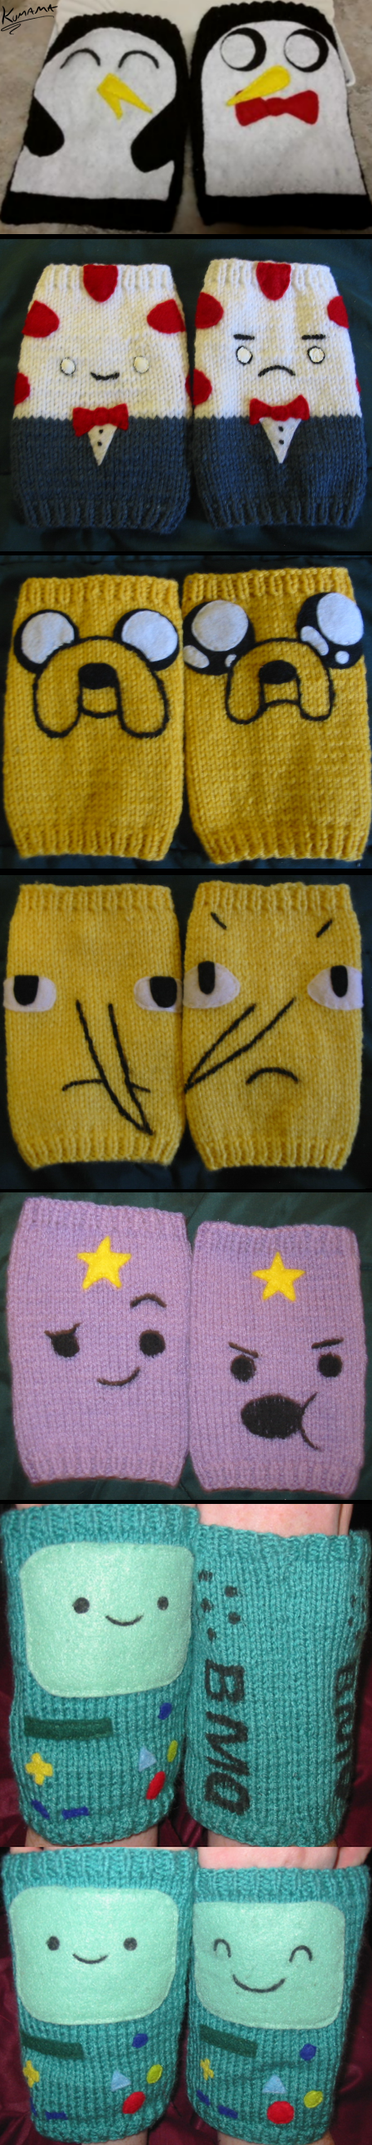 Adventure Time Knitting Patterns : Knitting: Adventure Time by Kumama on DeviantArt